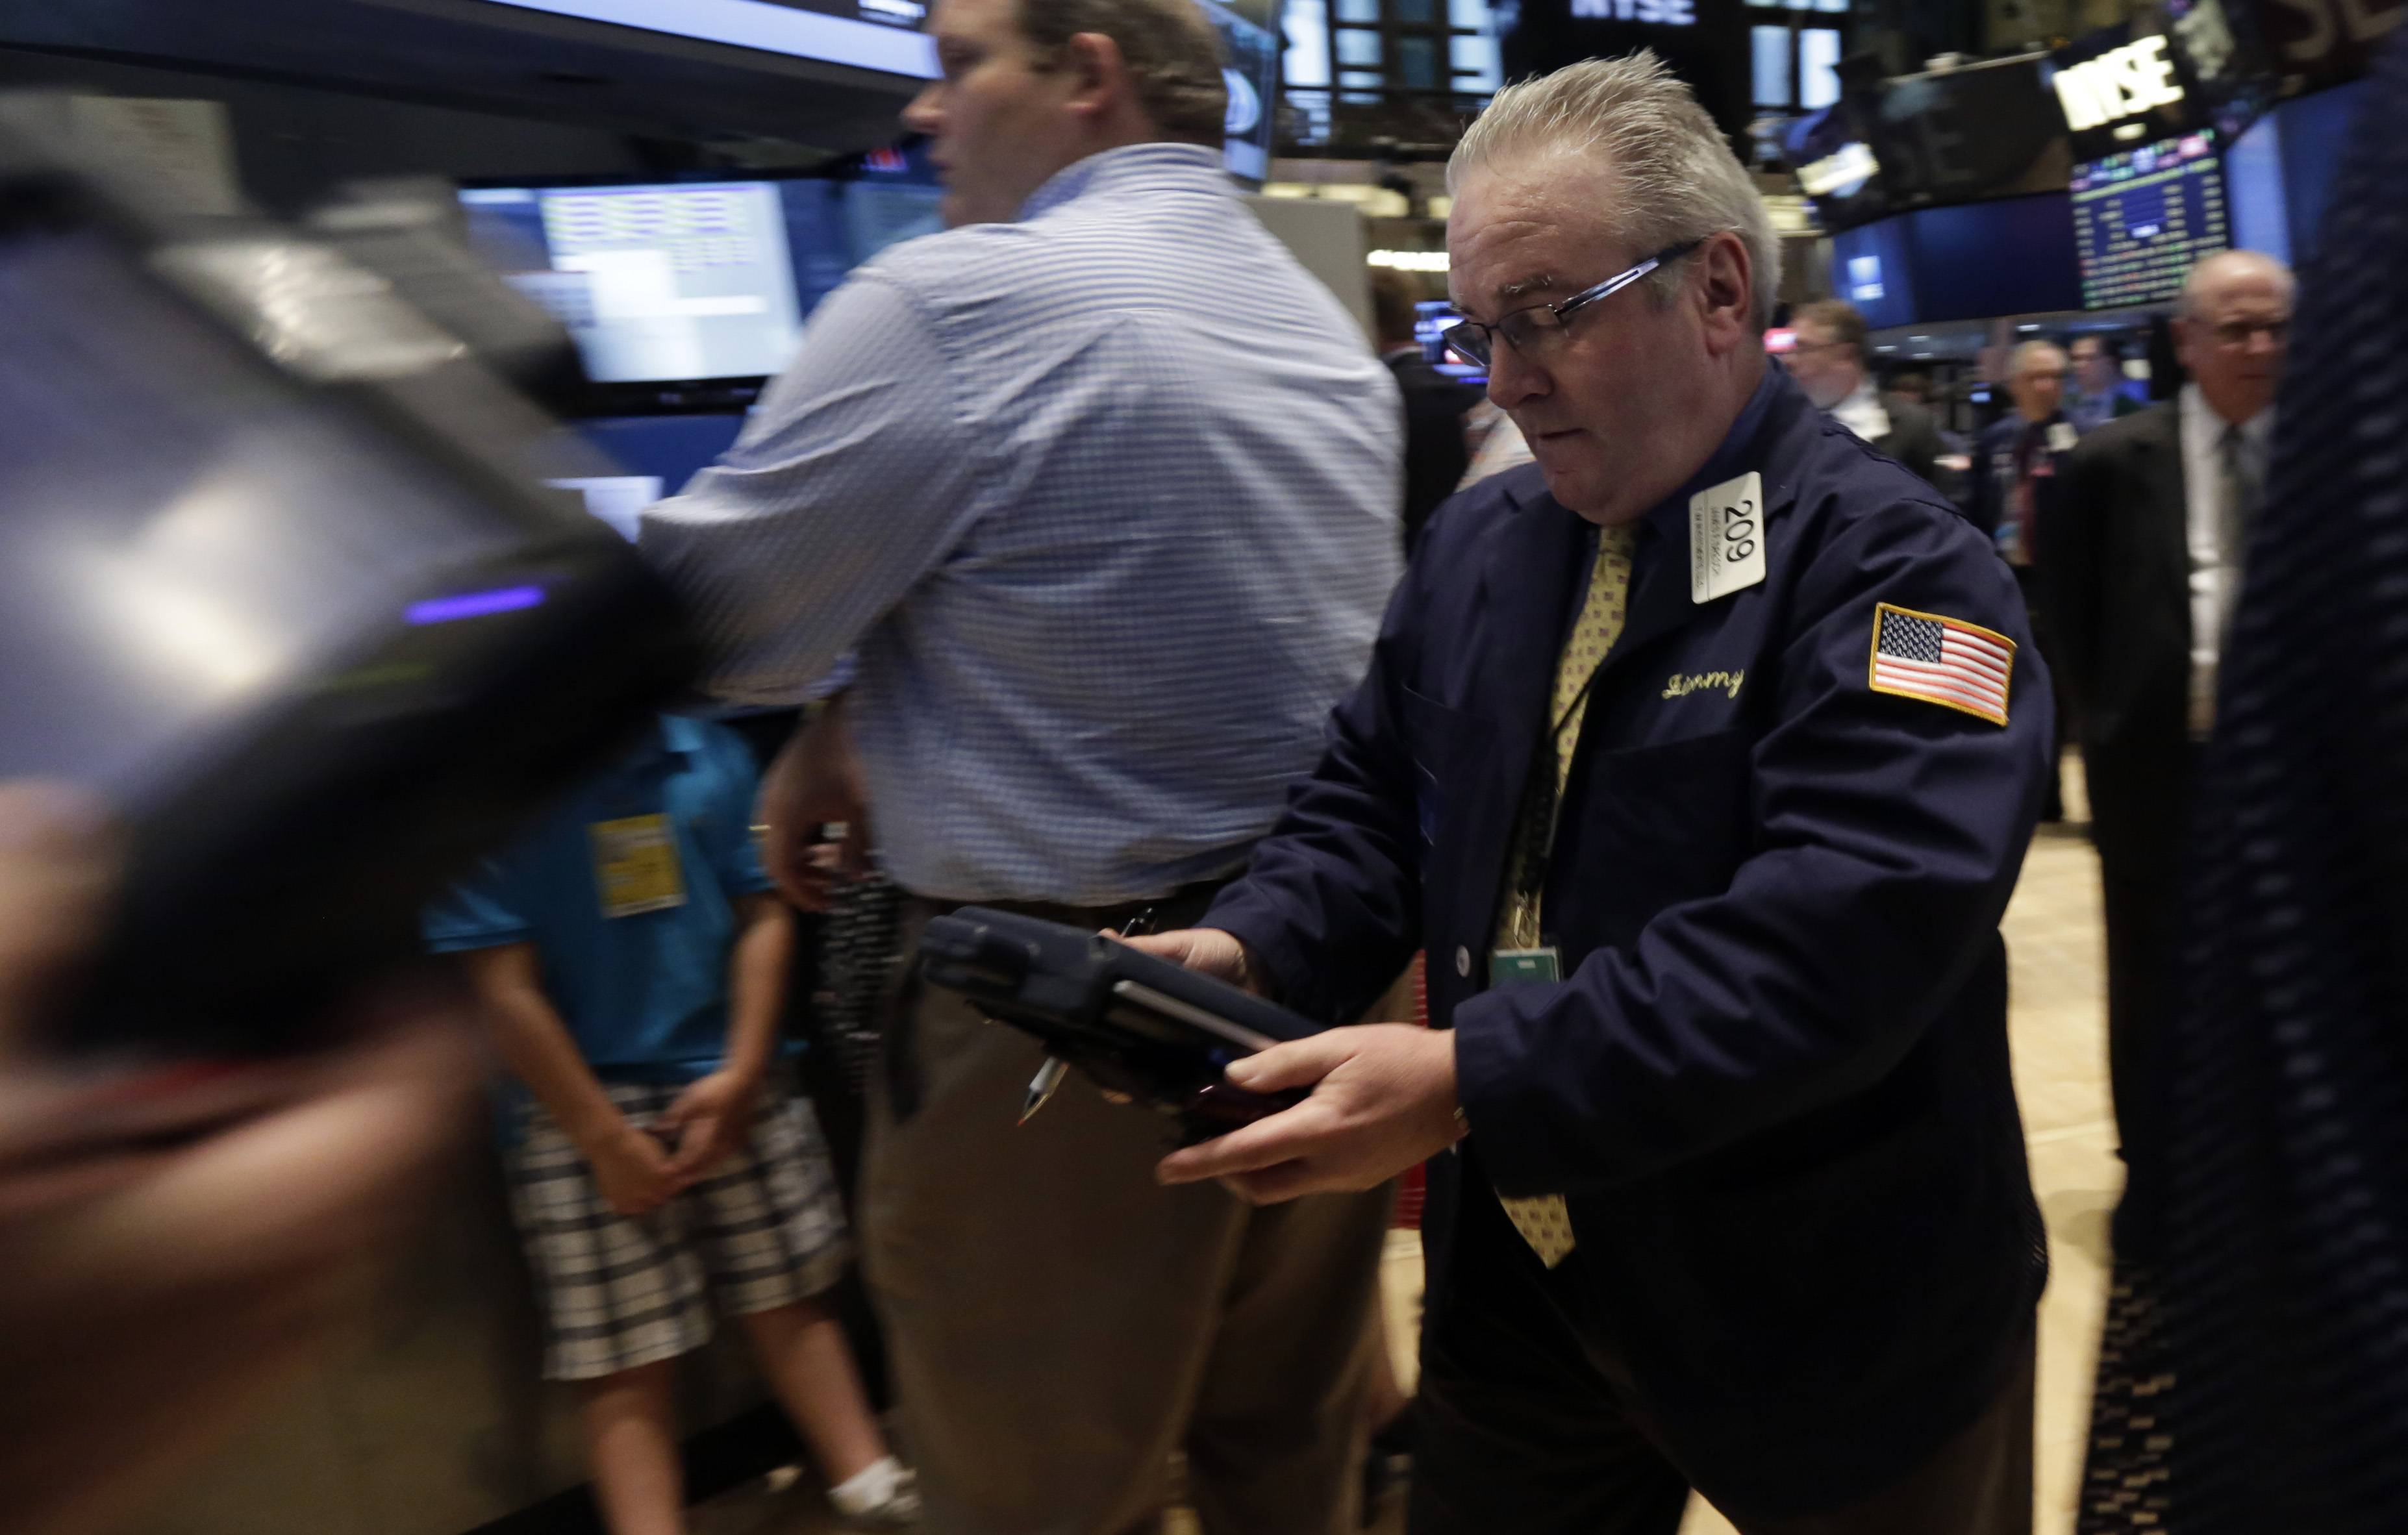 U.S. markets steadied on Friday a day after a major sell-off. Investors focused on a relatively strong jobs report, which showed the U.S. economy created 209,000 jobs in July, the sixth straight month of job growth above 200,000. Several large companies reported solid earnings including consumer products giant Procter & Gamble.